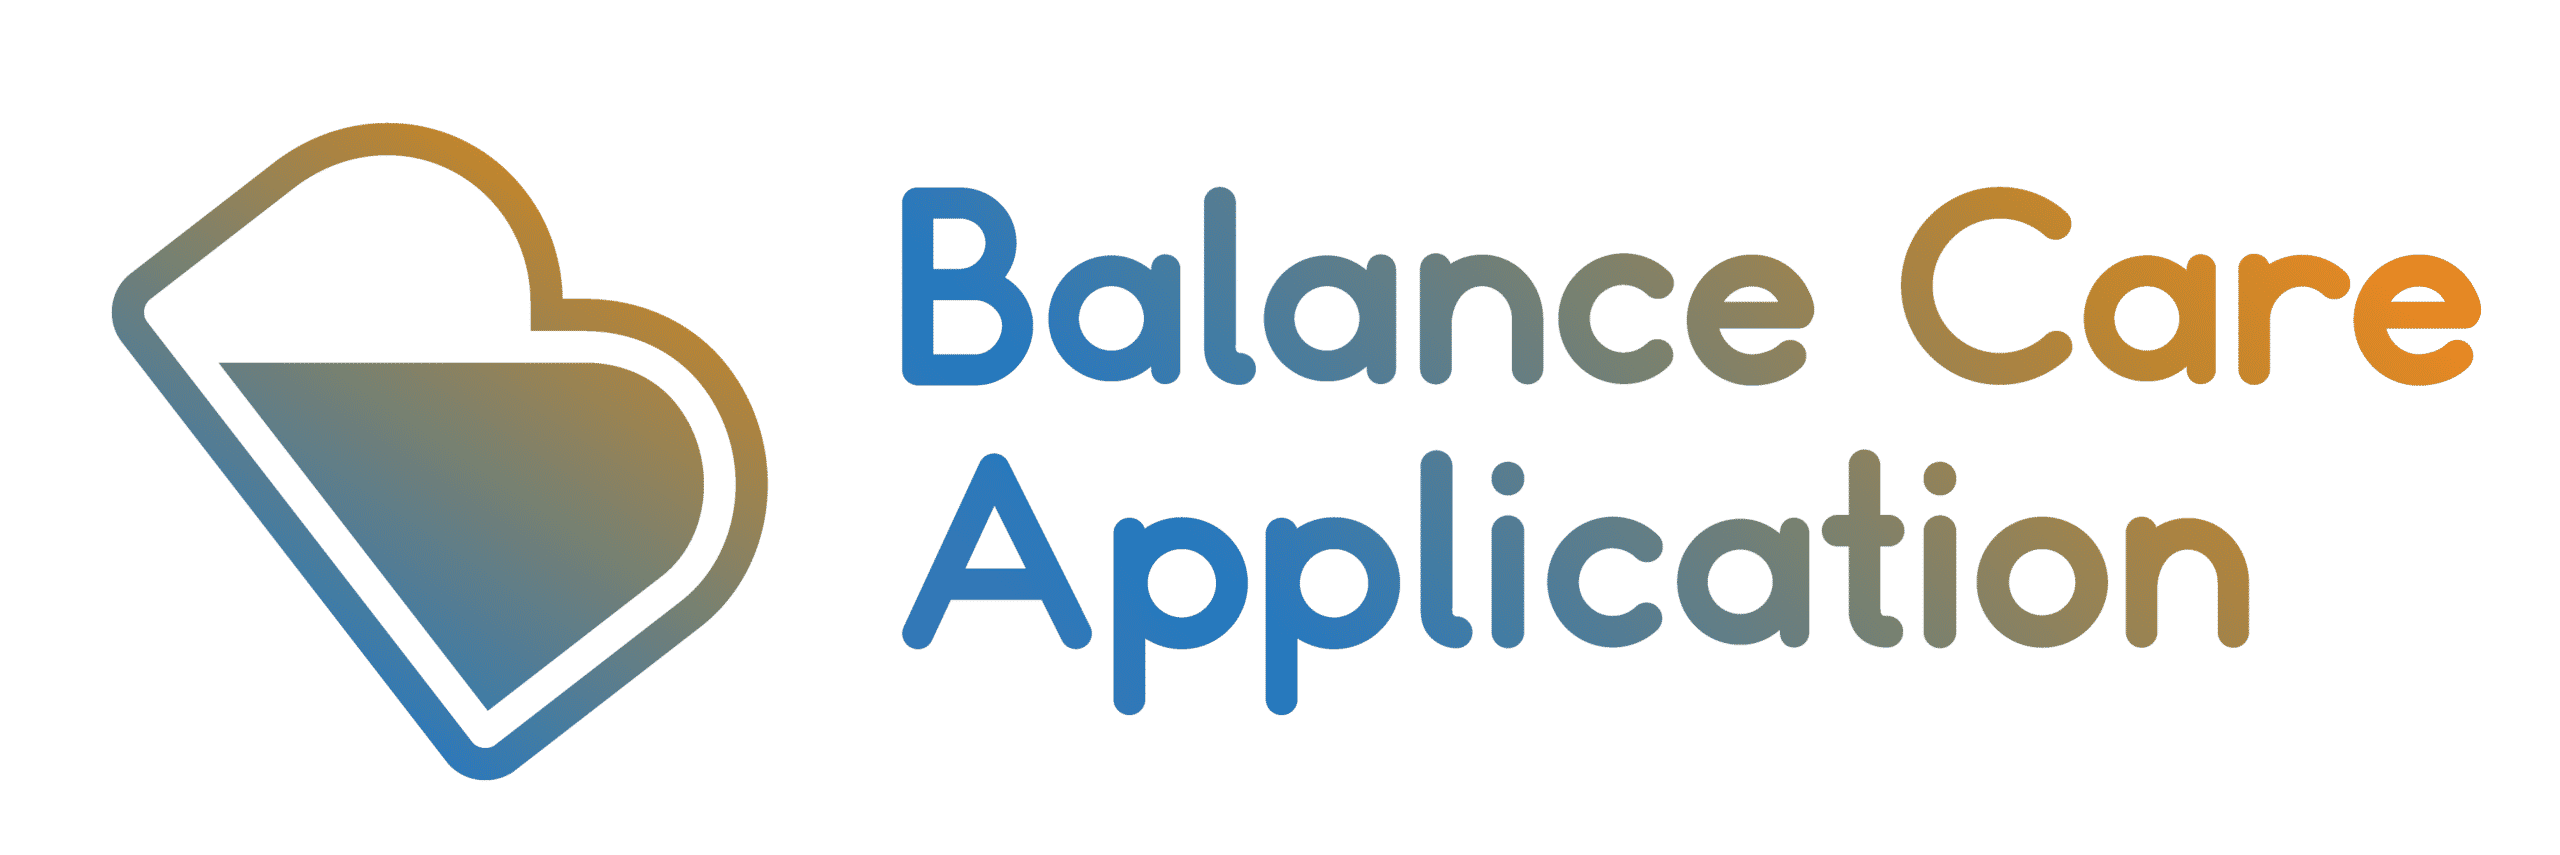 Balance Care  Application